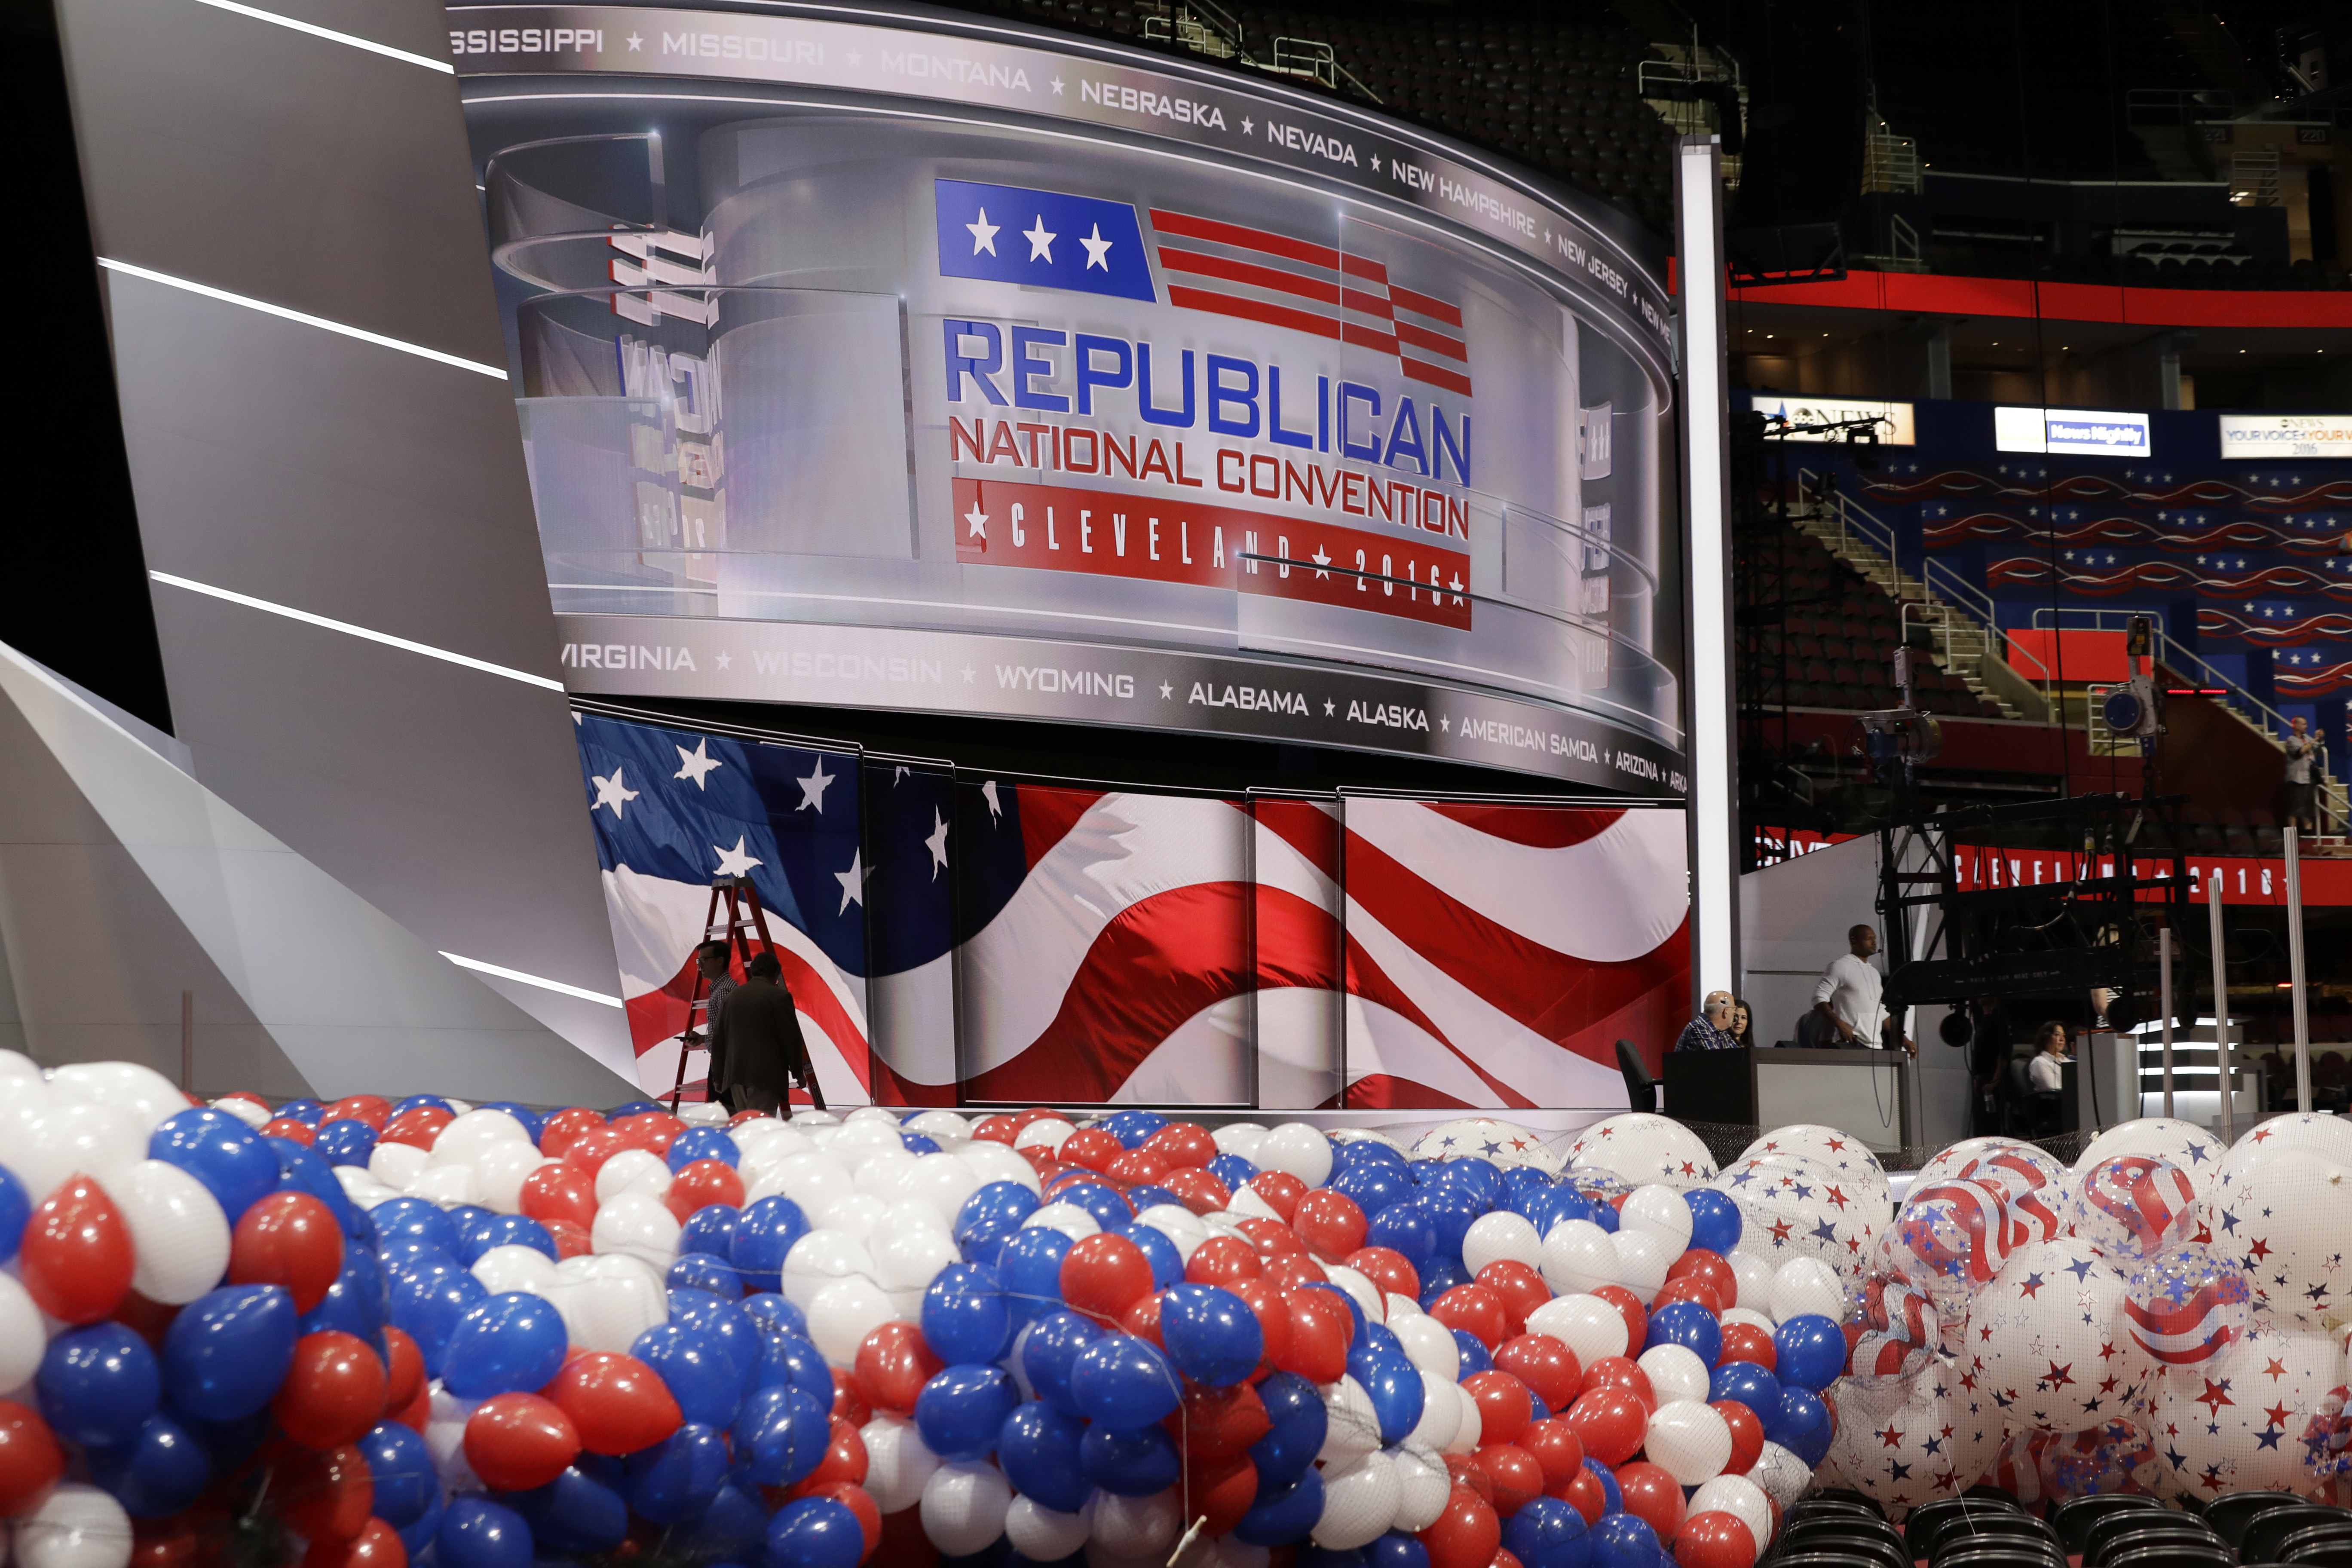 Sunday Gop Convention And Nice Attack Cbs News